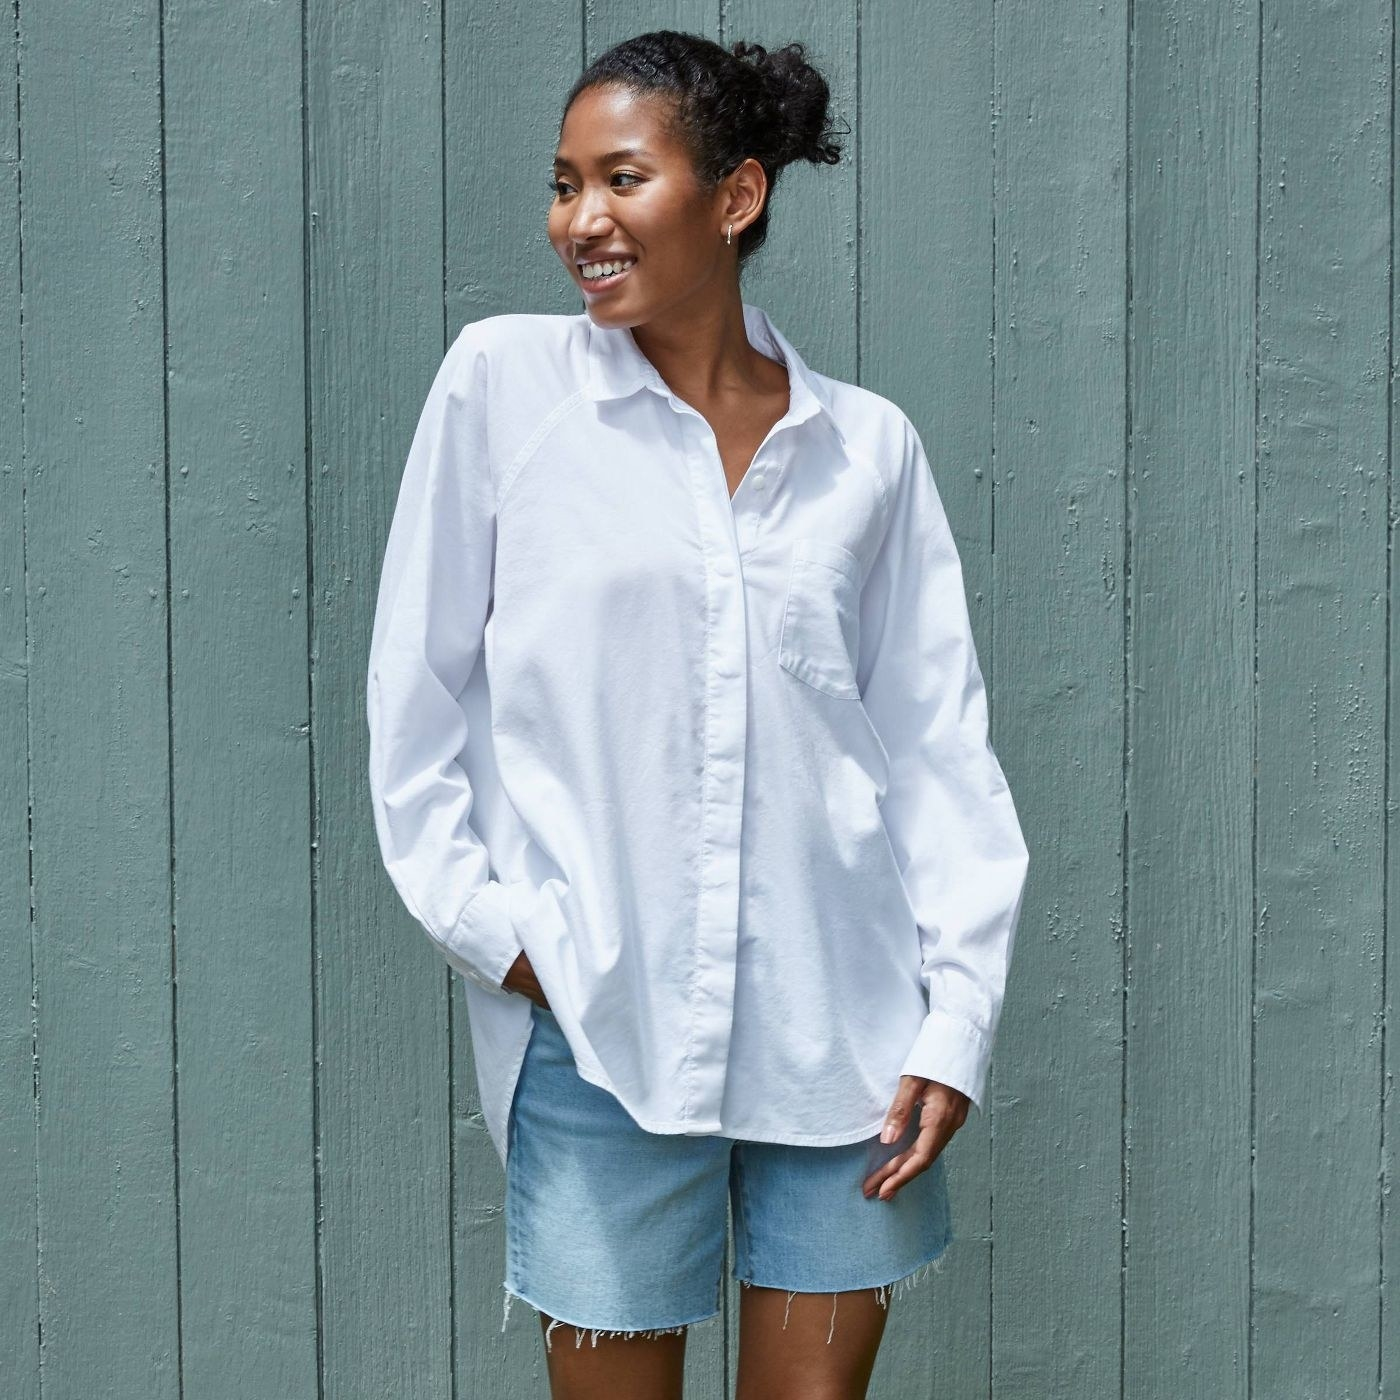 Model in oversized white button down shirt